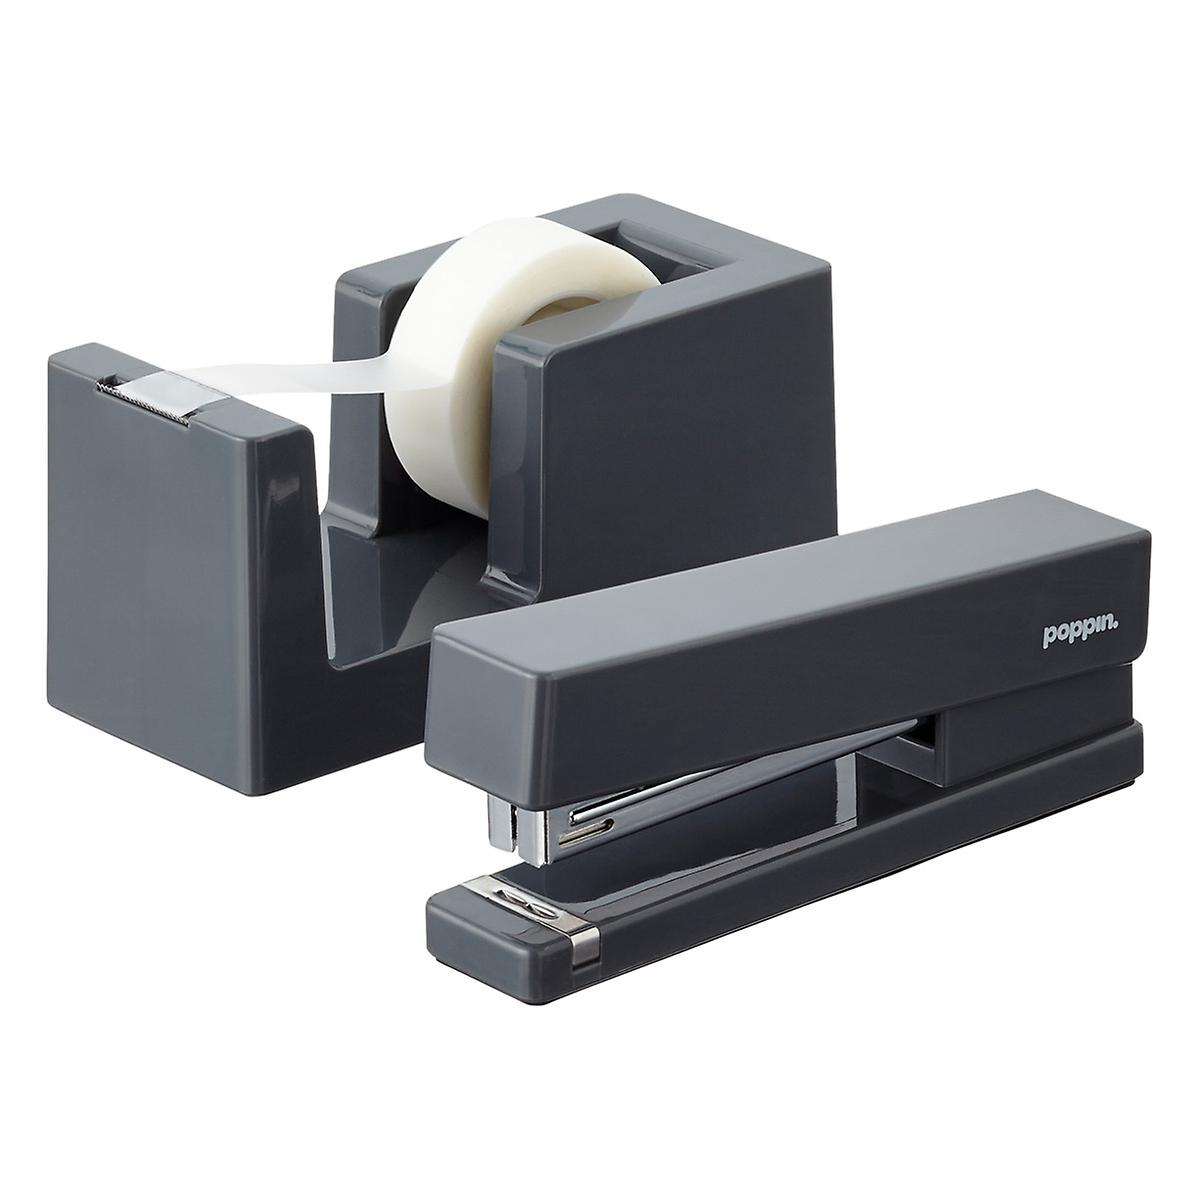 Dark Grey Poppin Tape Dispenser & Stapler